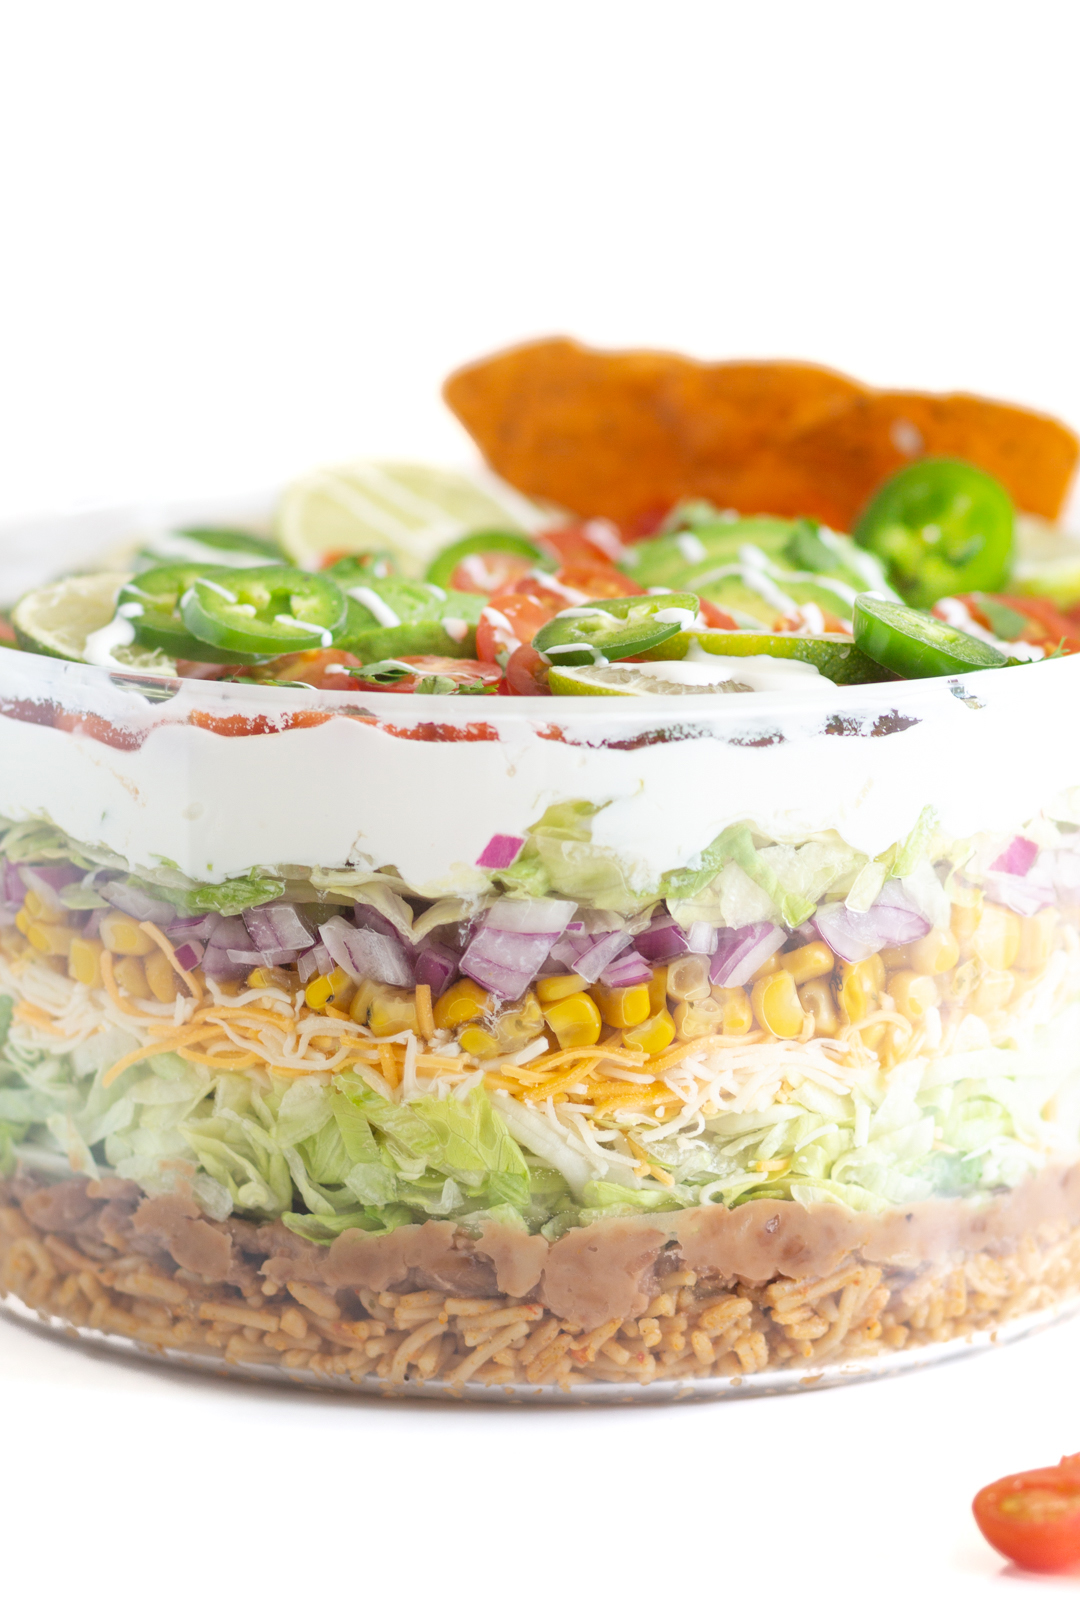 layered Mexican salad with refried beans, shredded lettuce, shredded cheese, diced onions, sour cream, canned corn.